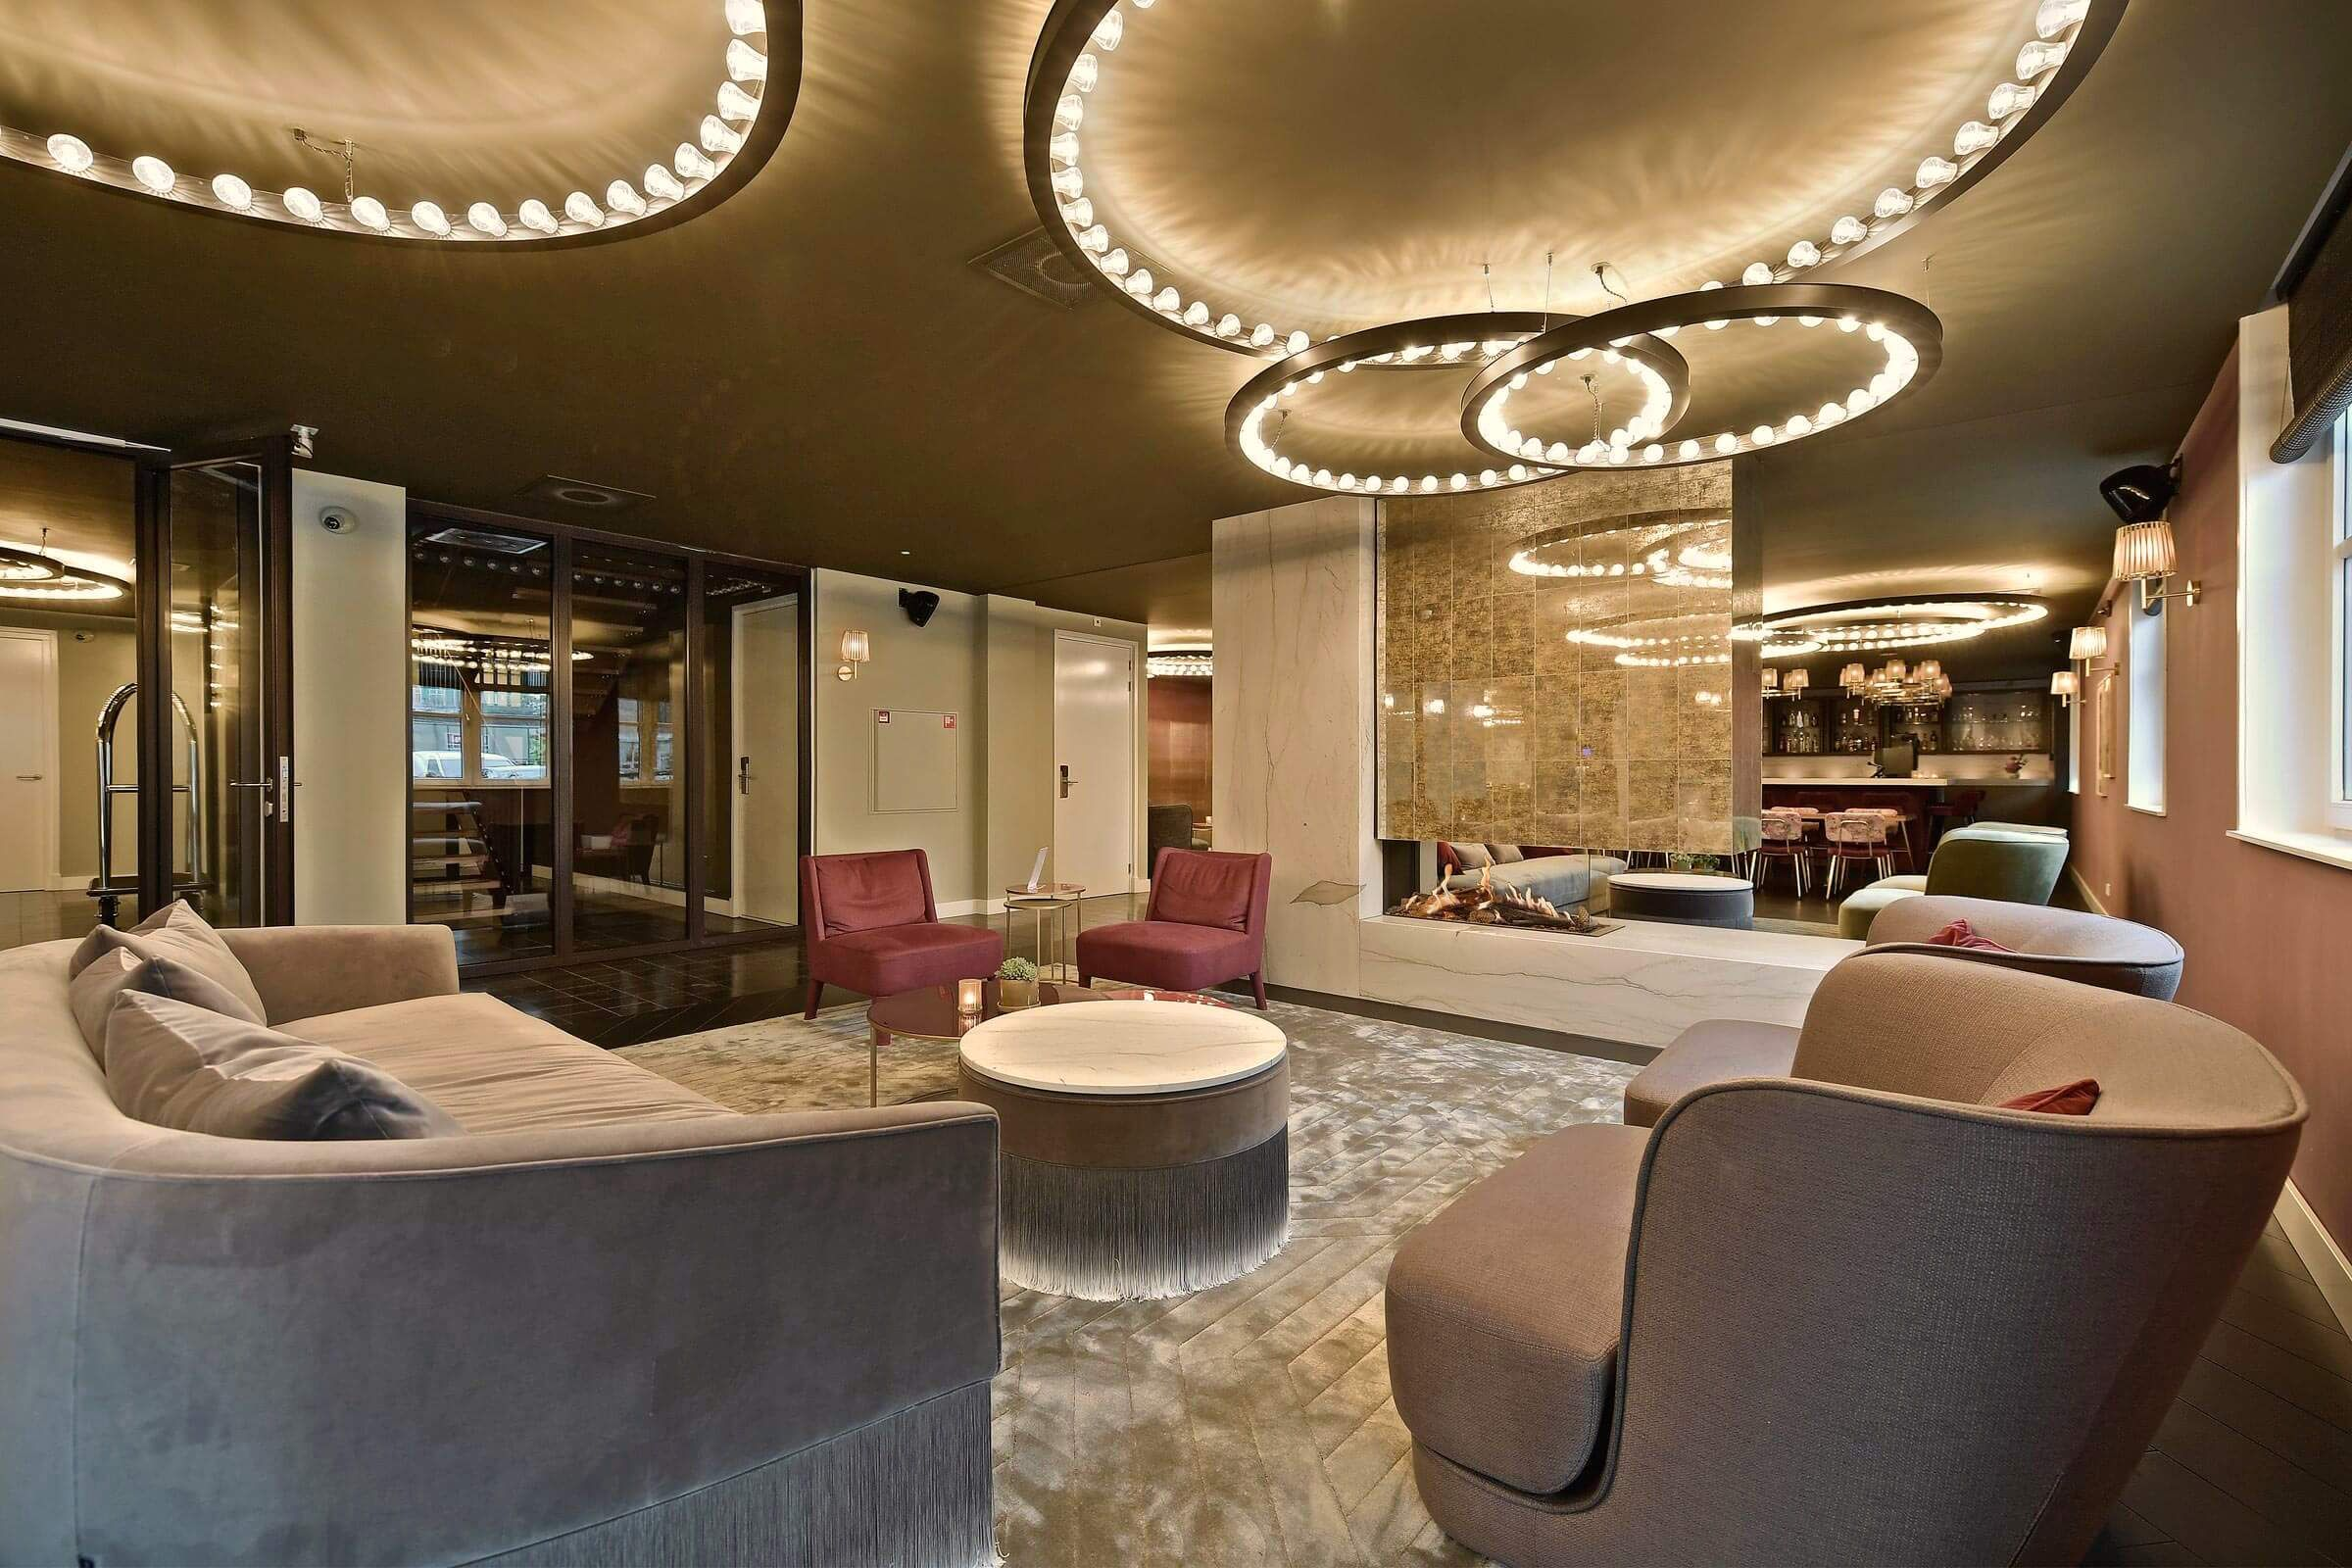 Aurora's @ Zaan Hotel in Zaandam, NL ; Interior by Marco van Veldhuizen ; Photo by Jaro van Meerten